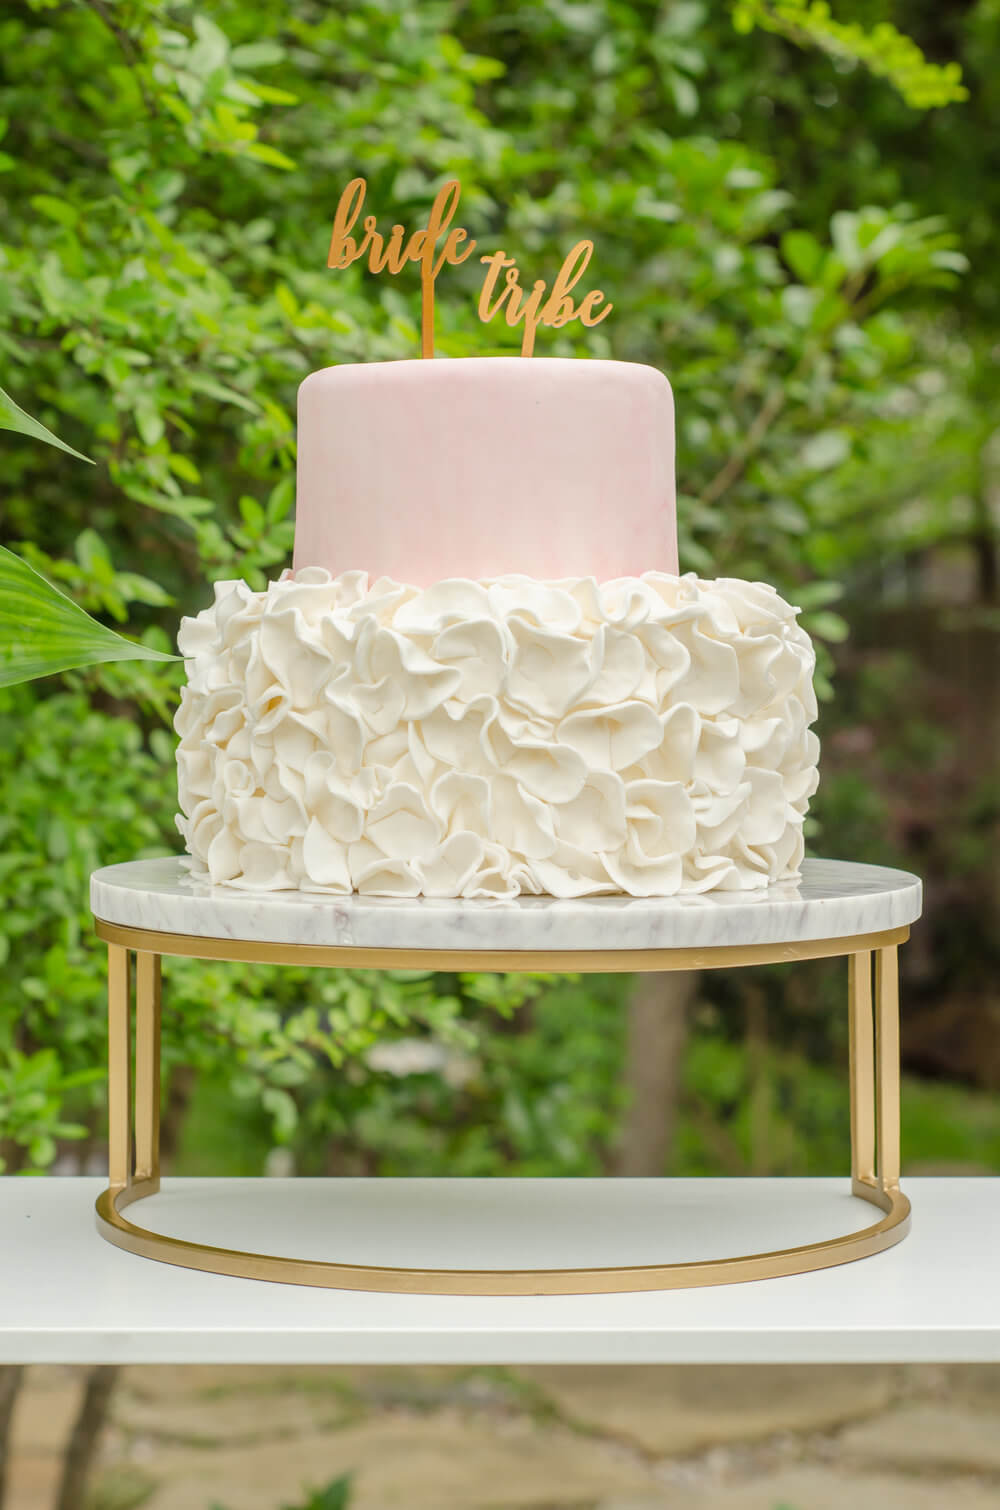 Cake-idea-for-a-bridal-shower.jpg